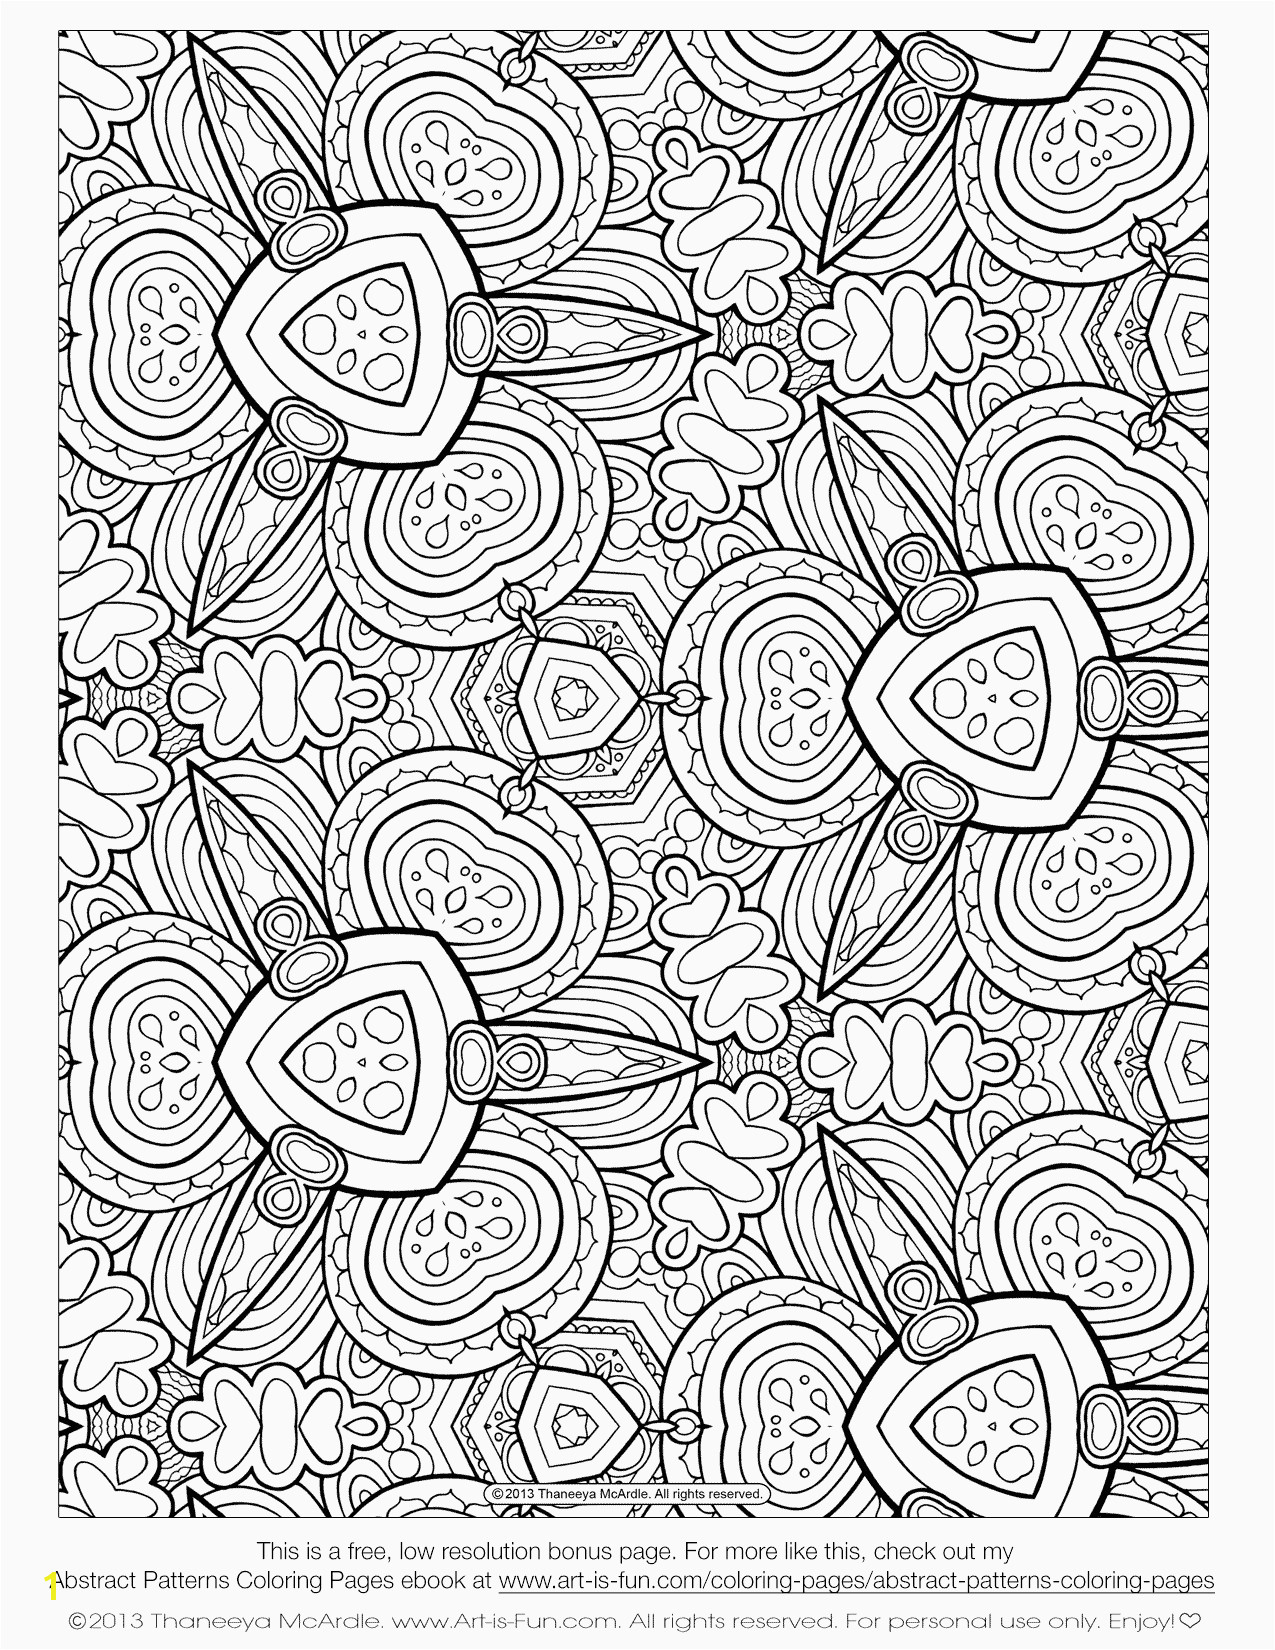 Thank You Coloring Pages Winter Coloring Pages Adults Best Free Coloring Pages Elegant Crayola Pages